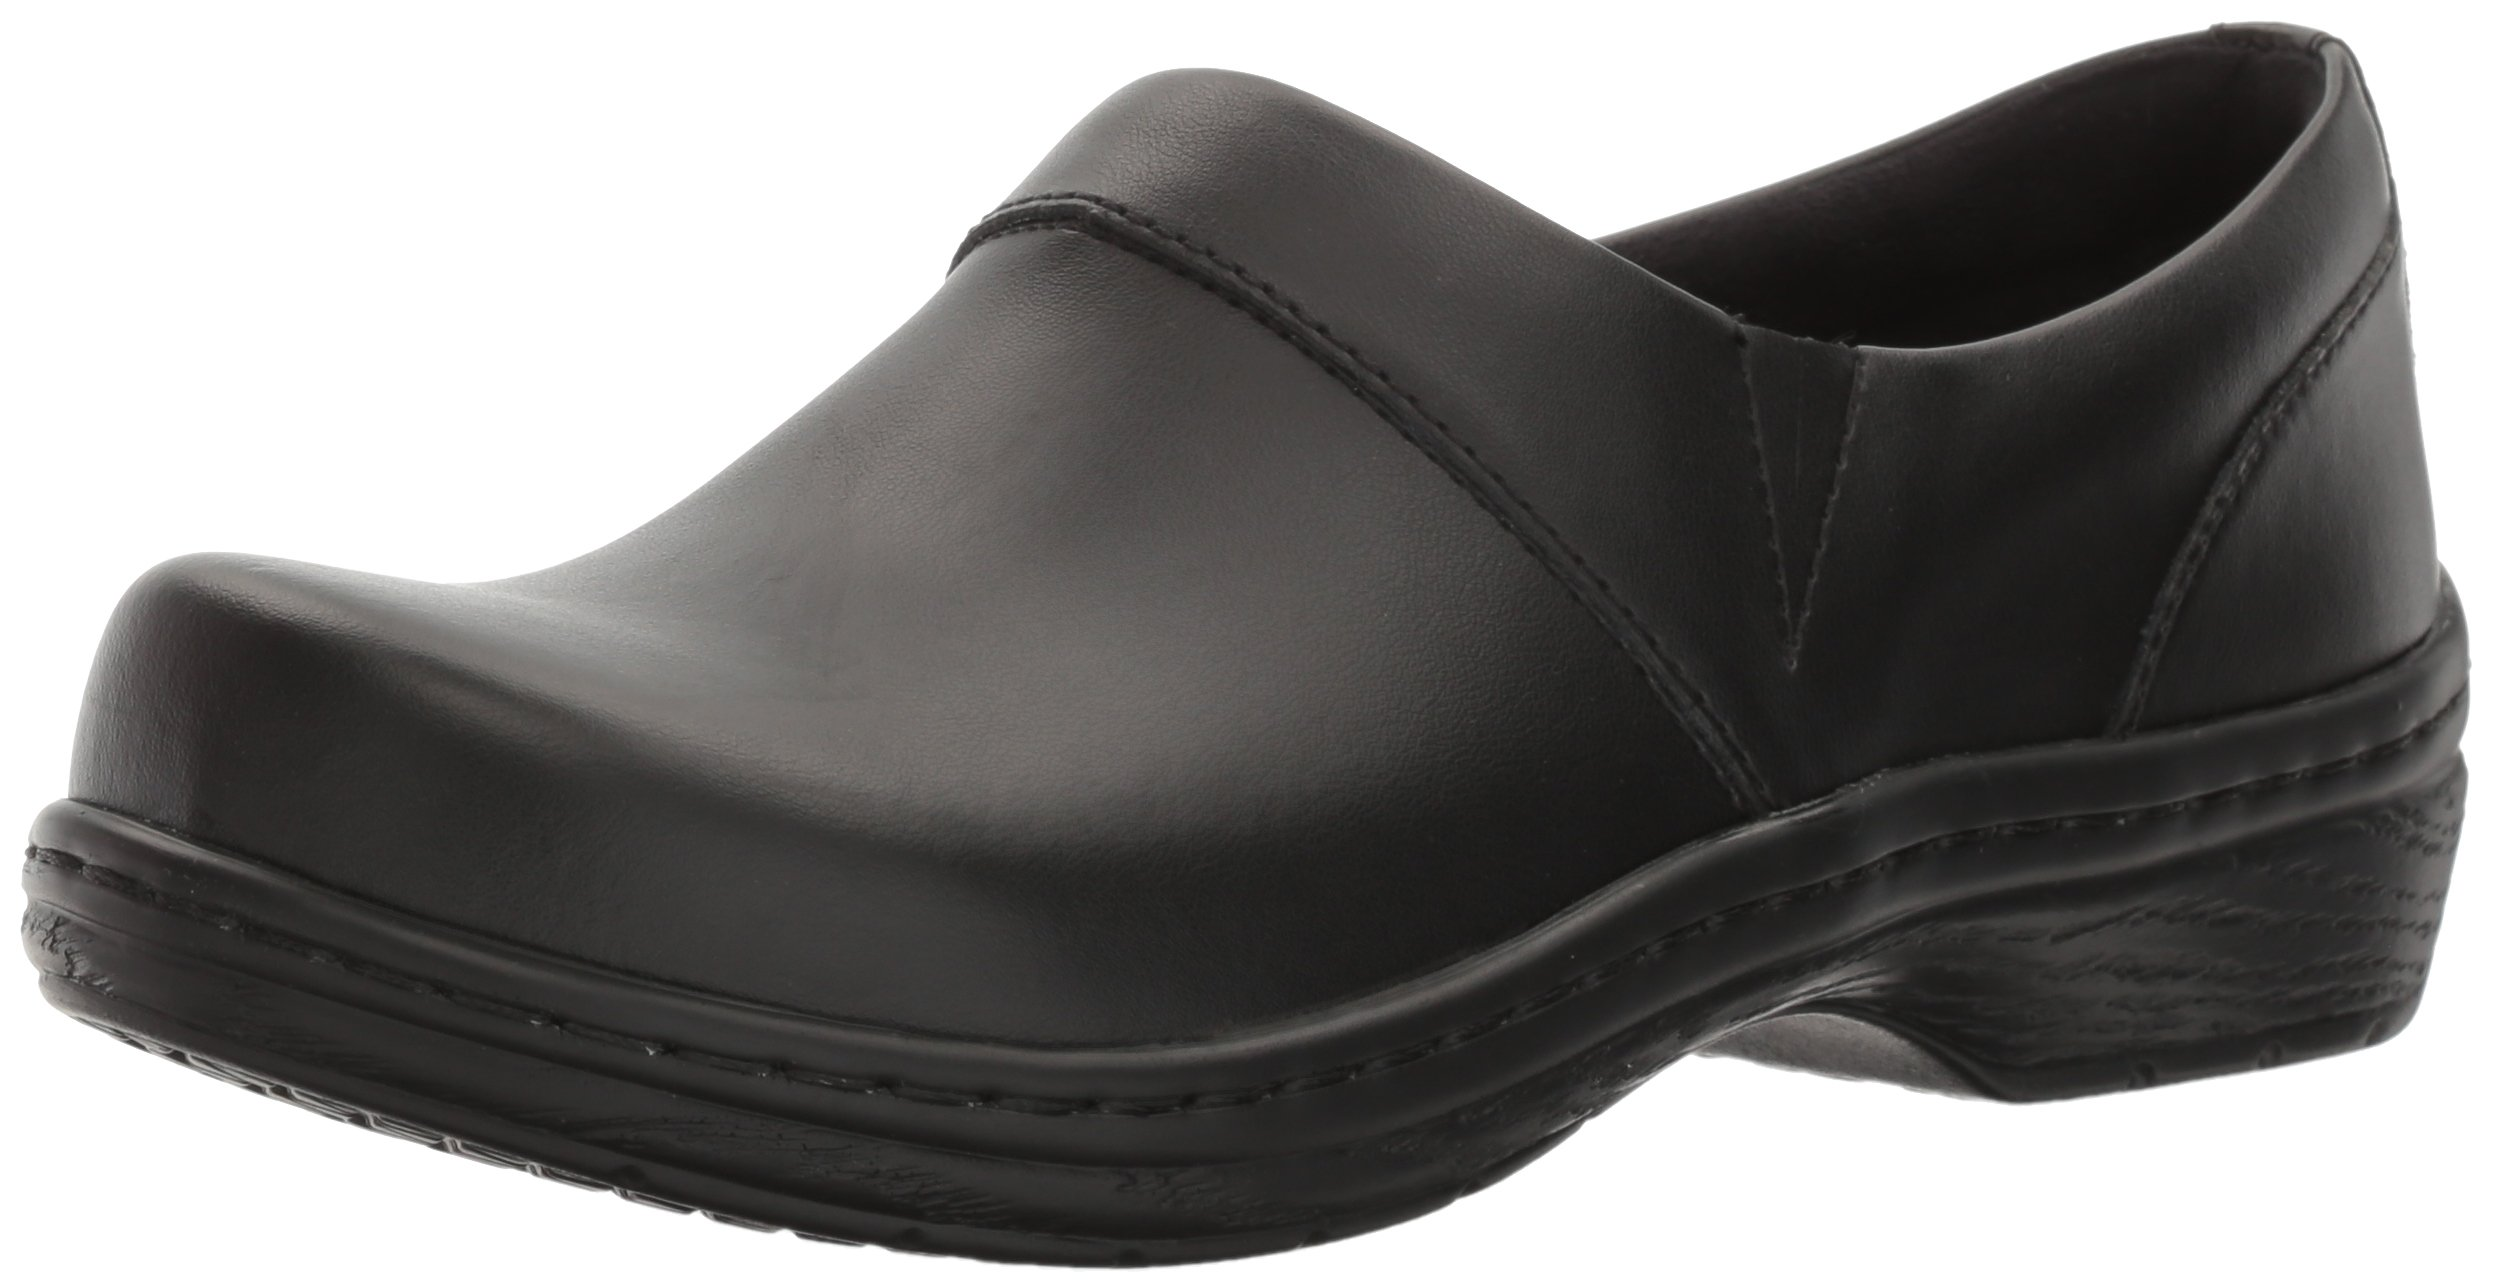 Klogs USA Women's Mission Clog,Black Smooth,7.5 W US